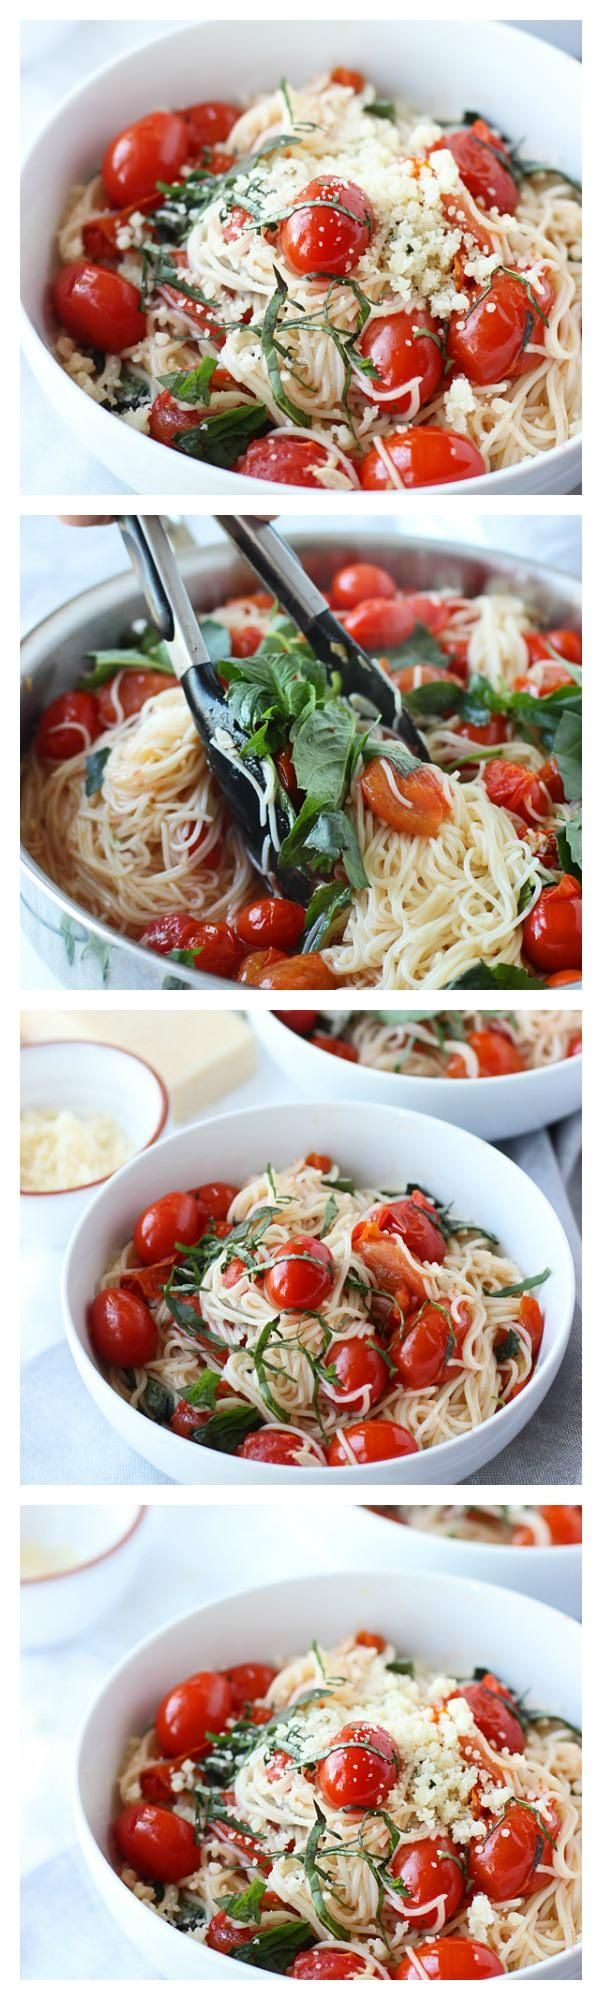 Just 20 minutes to make a fresh basil tomato pasta.